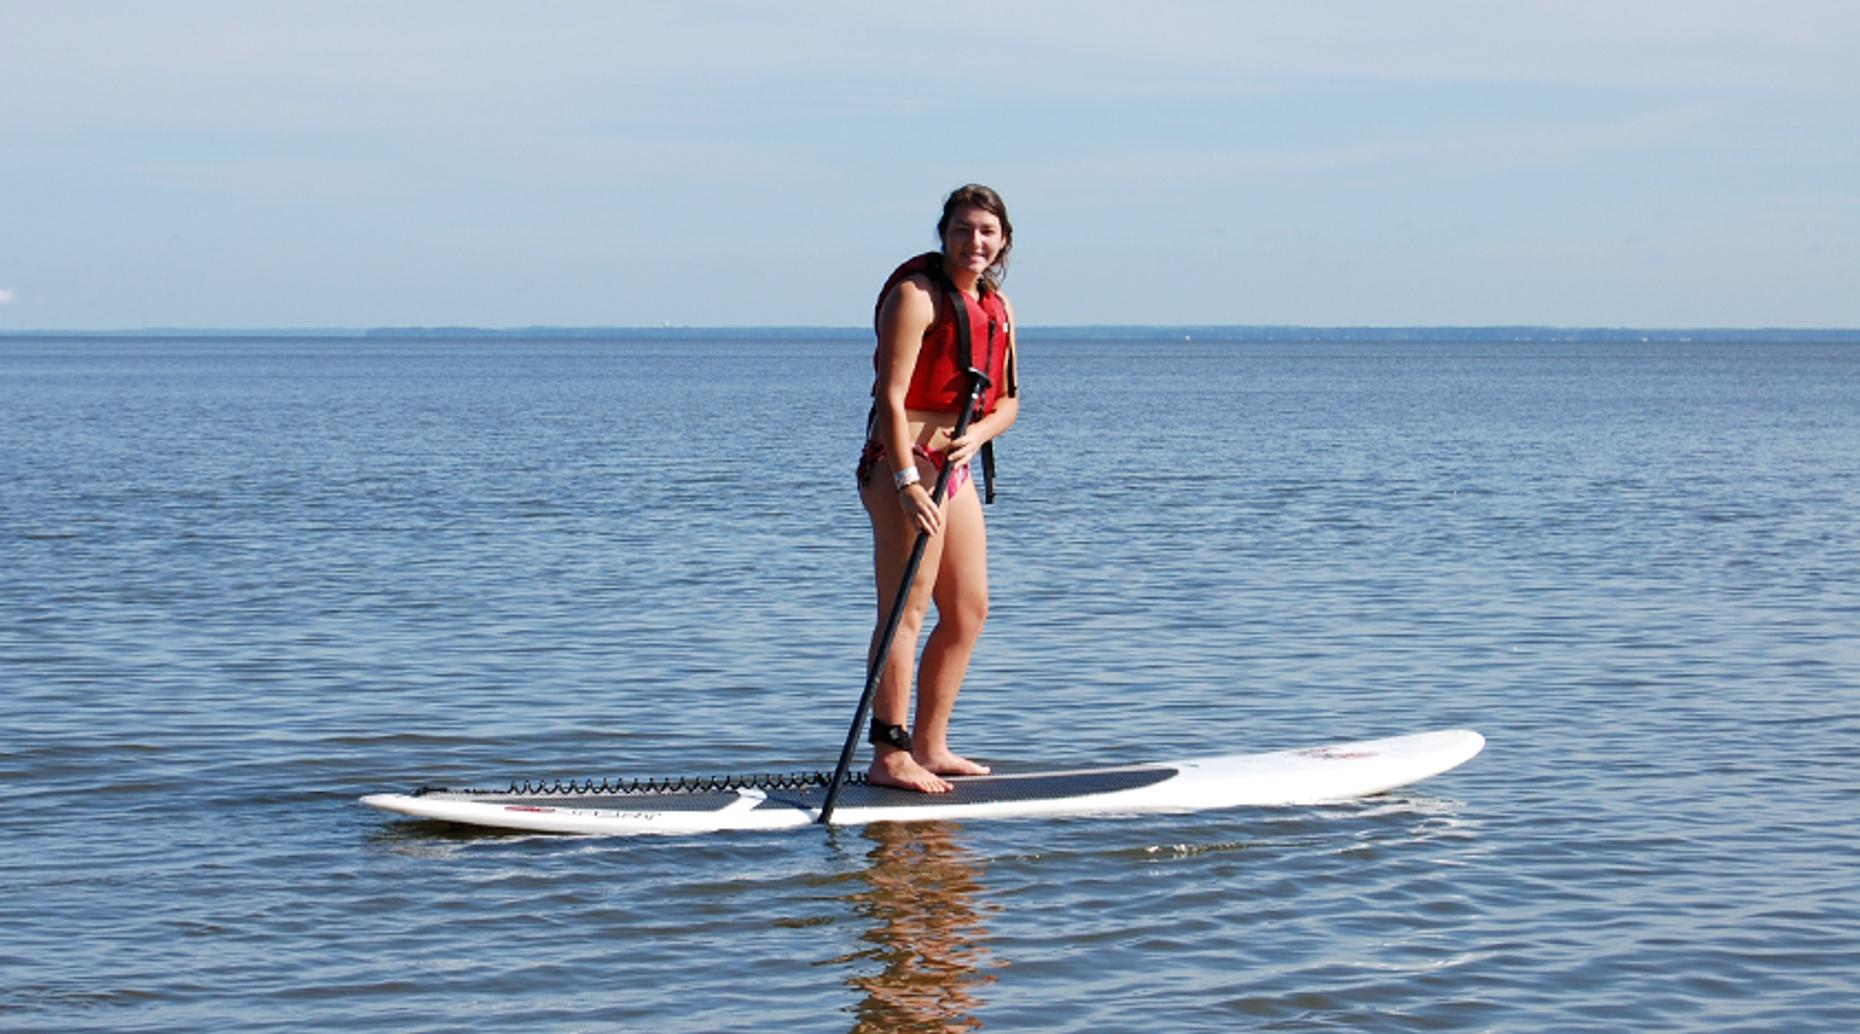 Beginner SUP Lesson in New Jersey